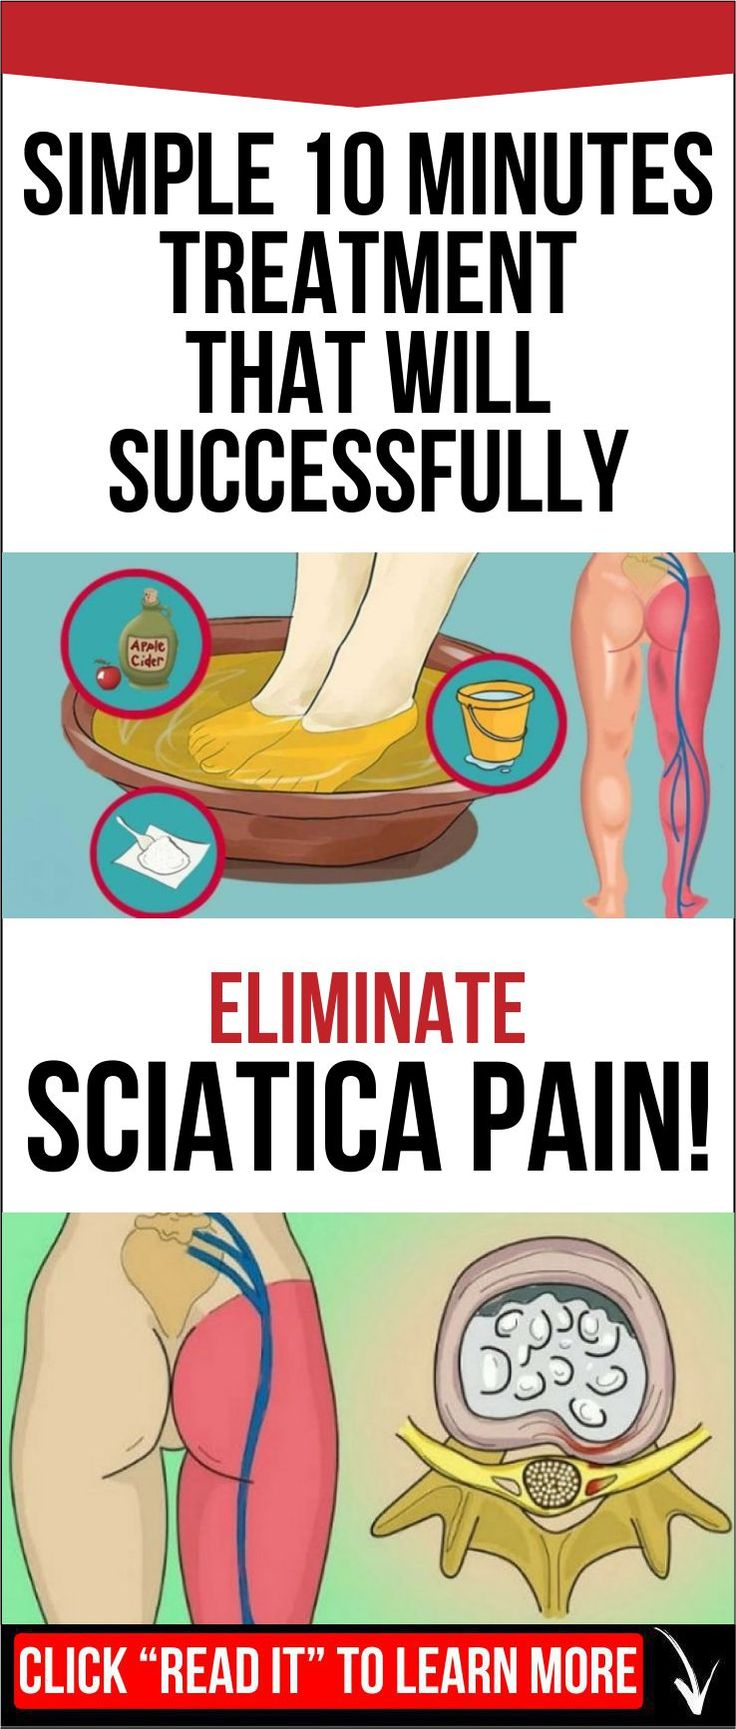 SIMPLE 10 MINUTES TREATMENT THAT WILL SUCCESSFULLY ELIMINATE SCIATICA PAIN!